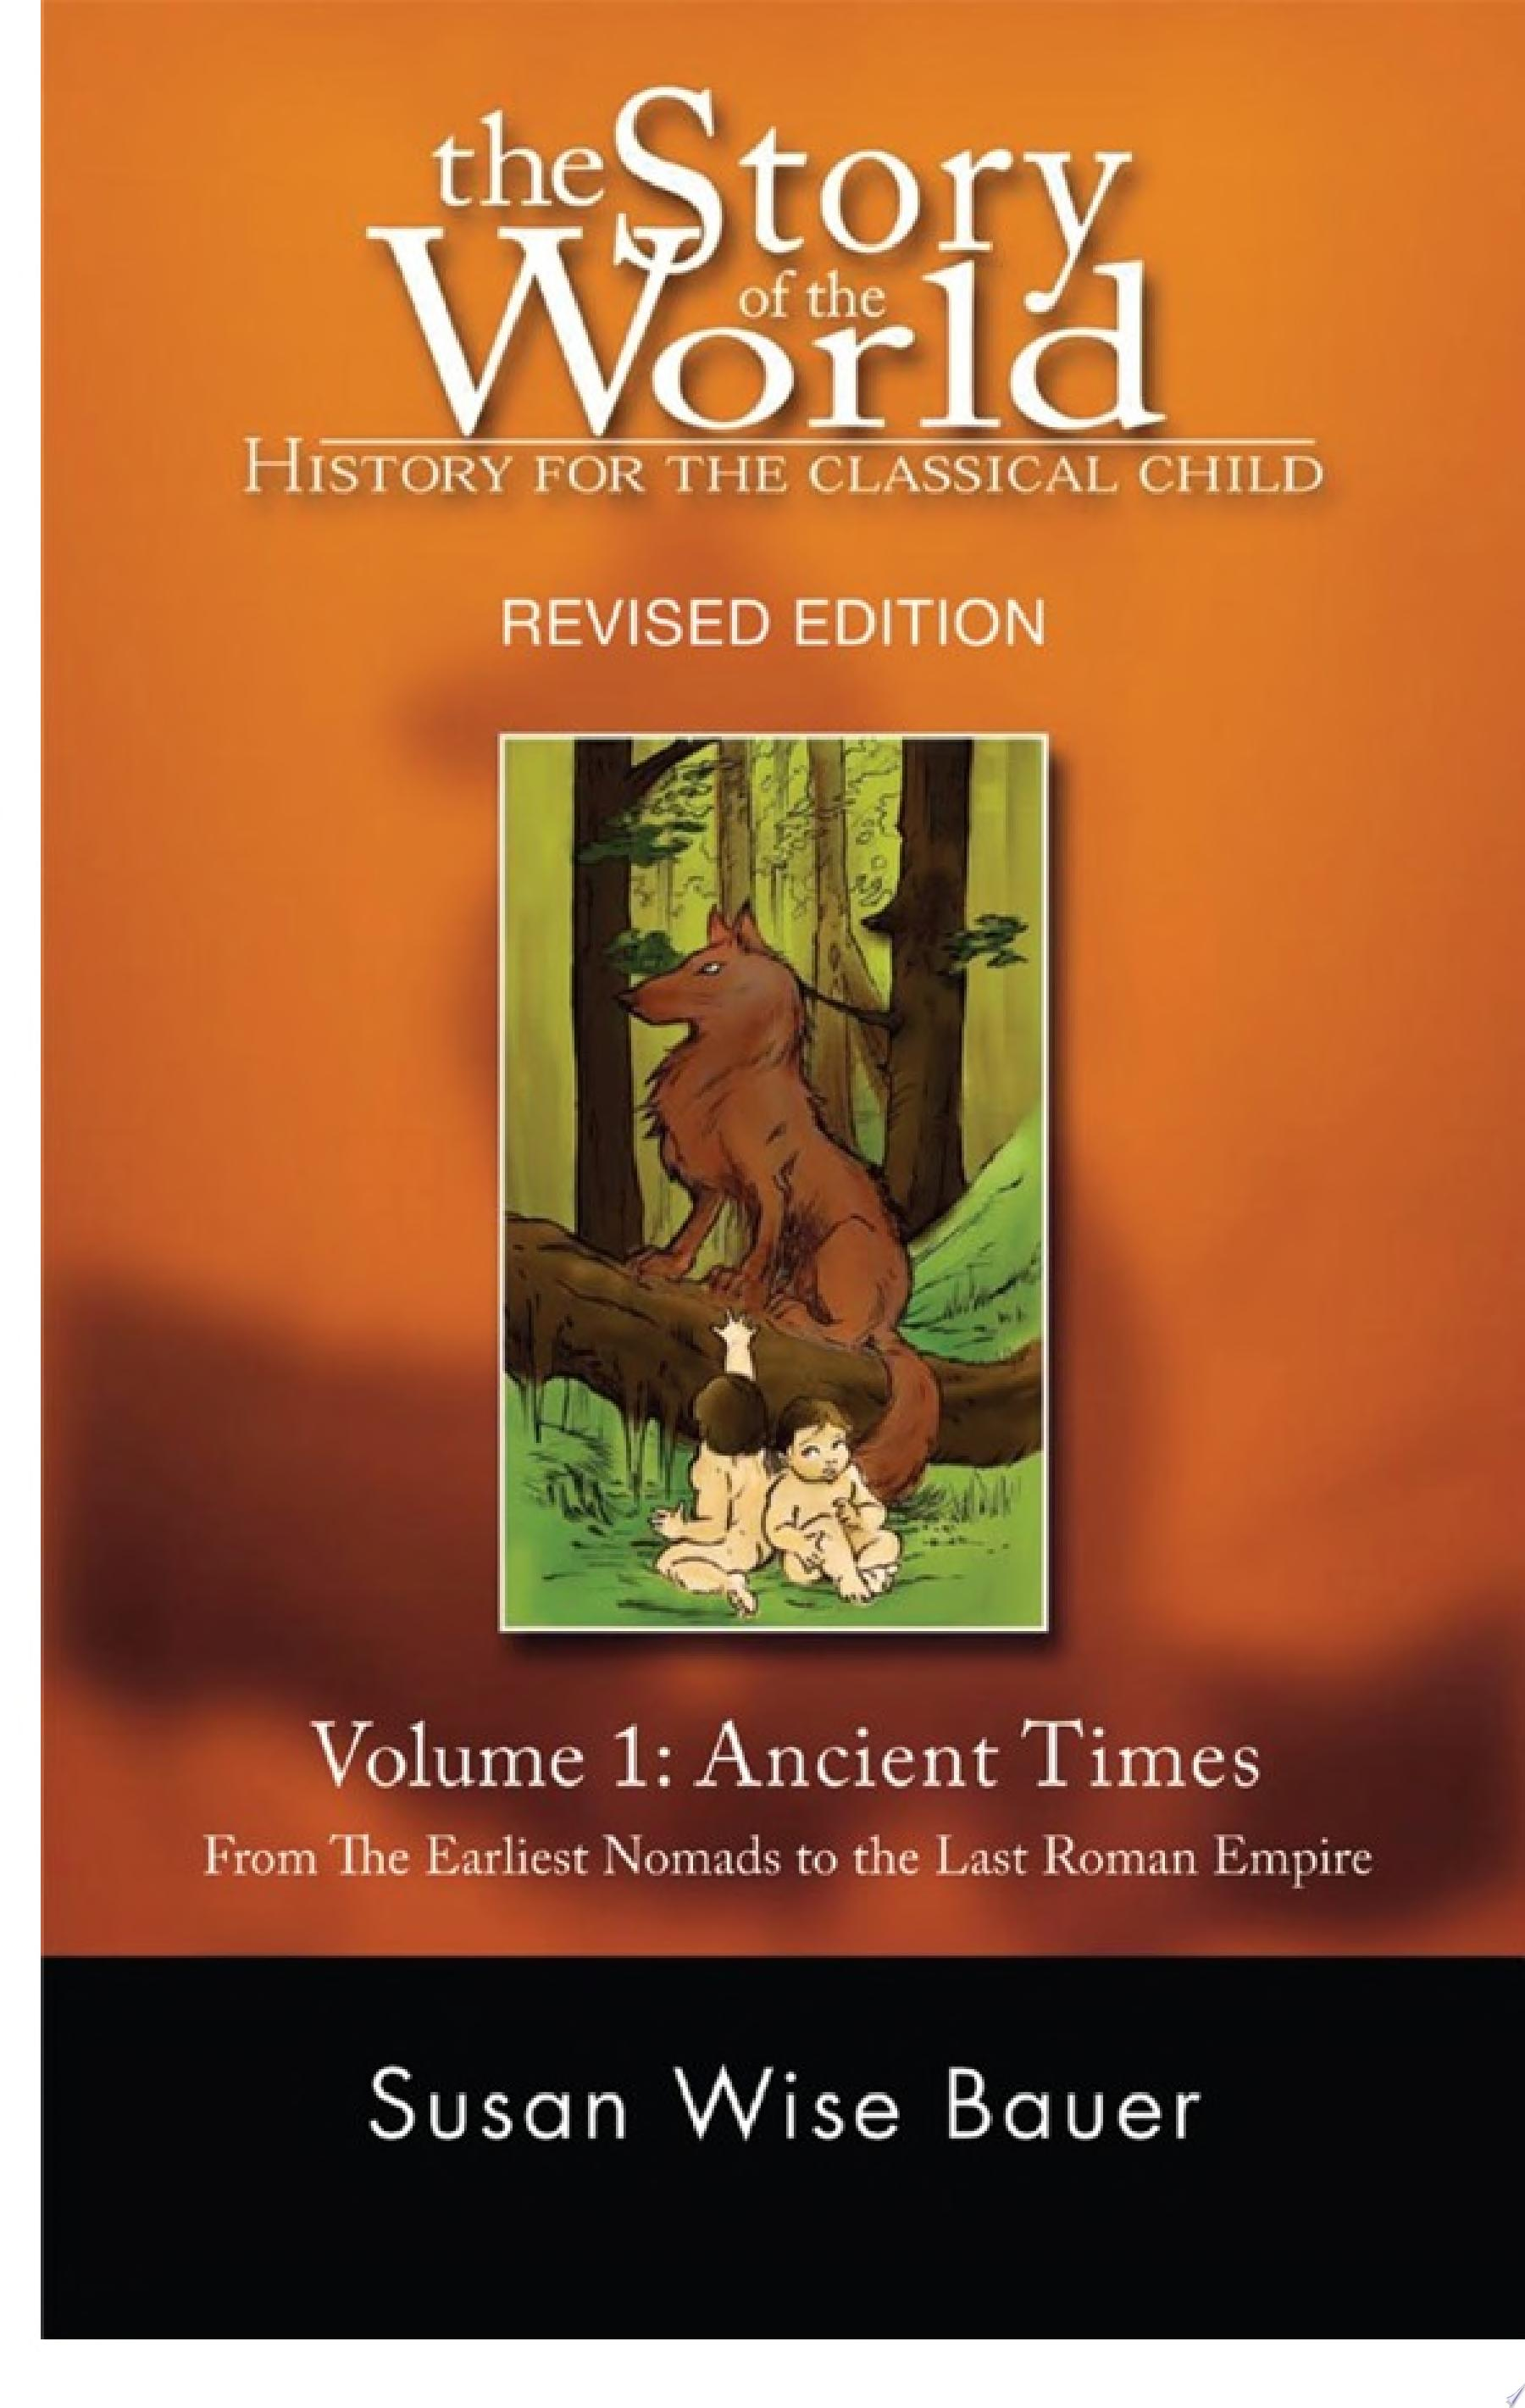 The Story of the World  History for the Classical Child  Ancient Times  From the Earliest Nomads to the Last Roman Emperor  Revised Second Edition   Vol  1   Story of the World